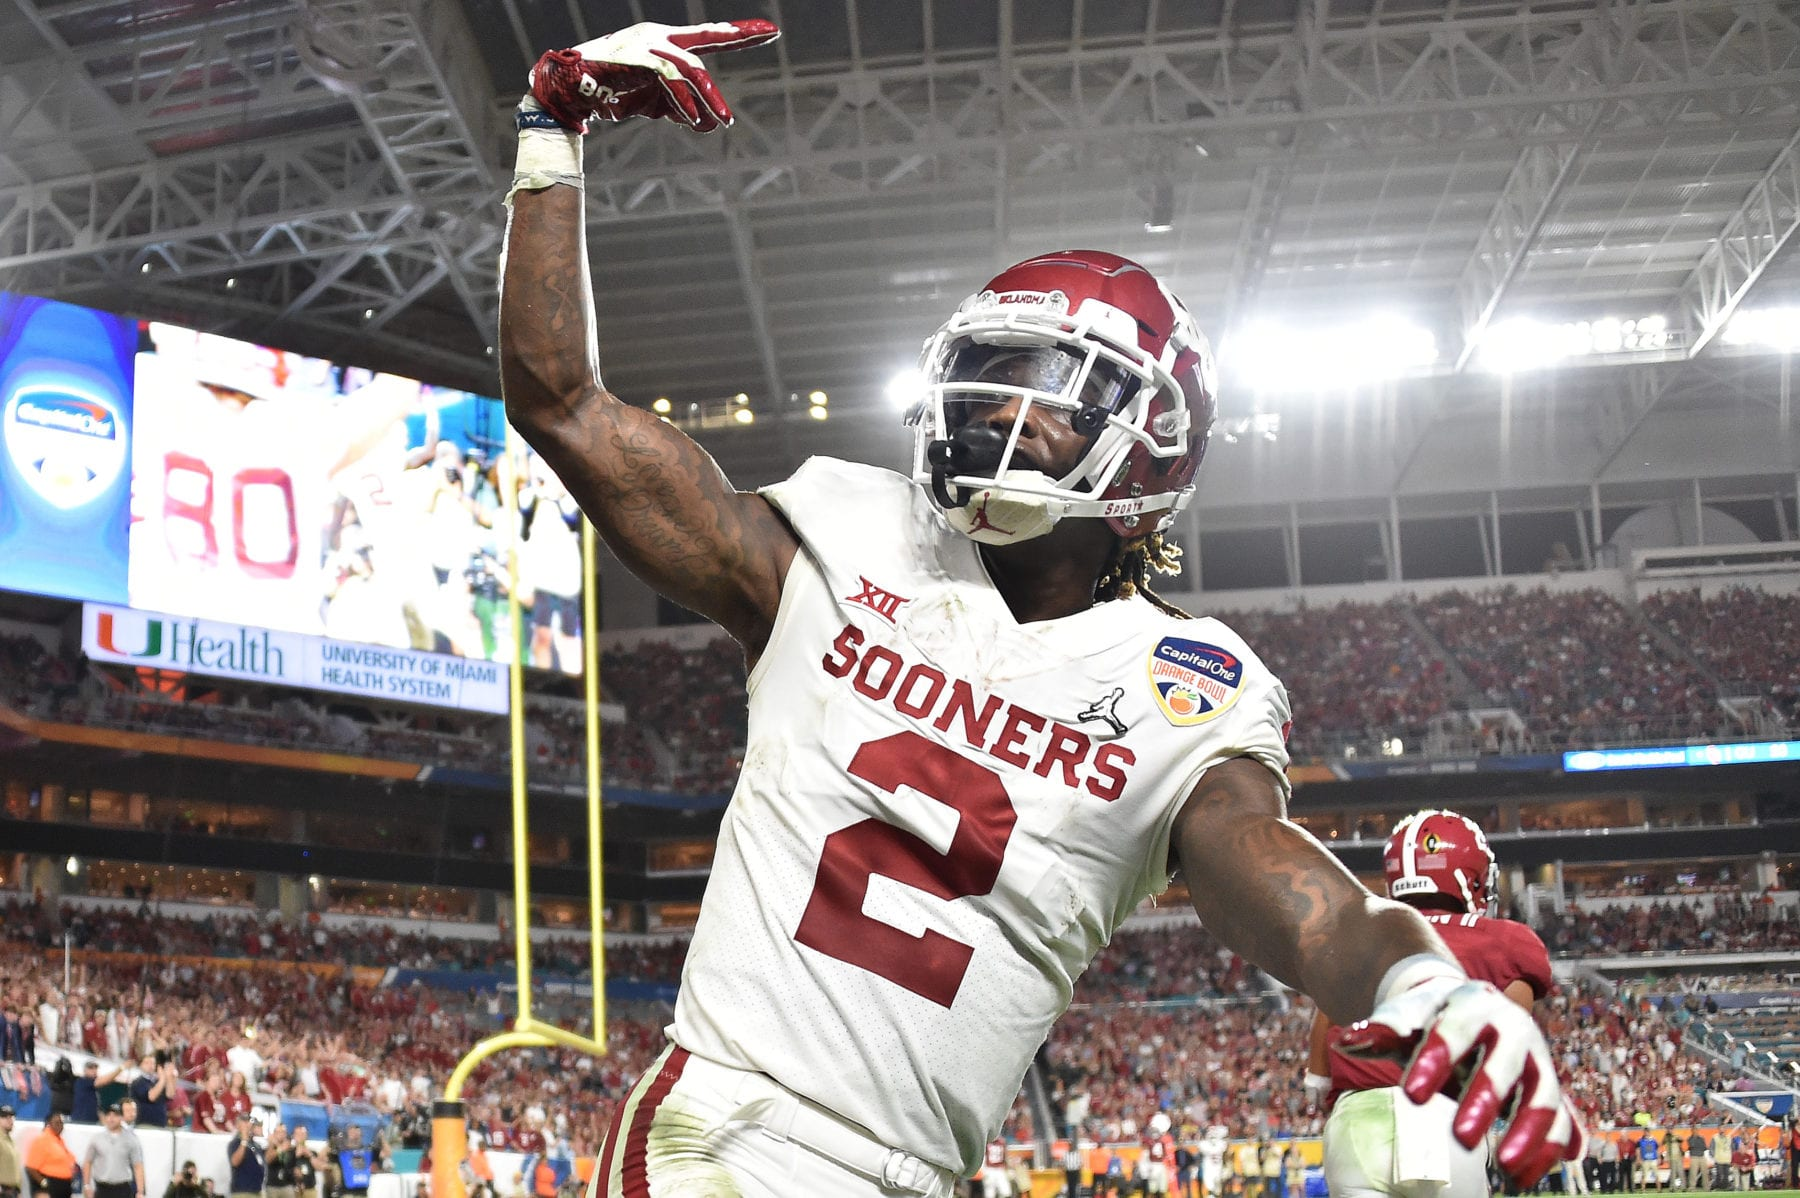 Best College Wide Receivers 2020 The 2020 WR Class Could Truly Be Historic | The Draft Network